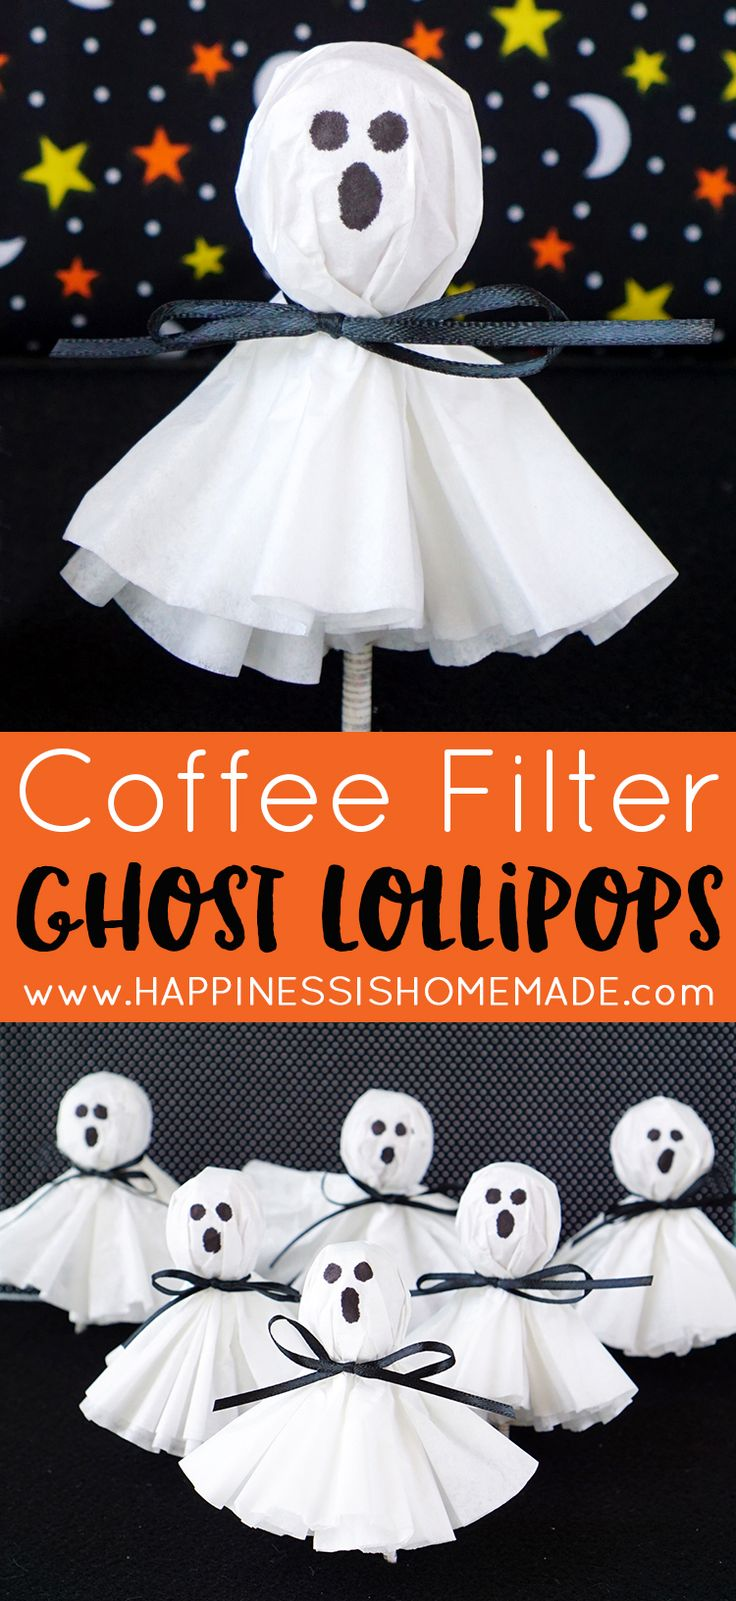 coffee filter ghost lollipops fun halloween treatshalloween crafts for kidshalloween - Halloween Arts And Crafts For Kids Pinterest